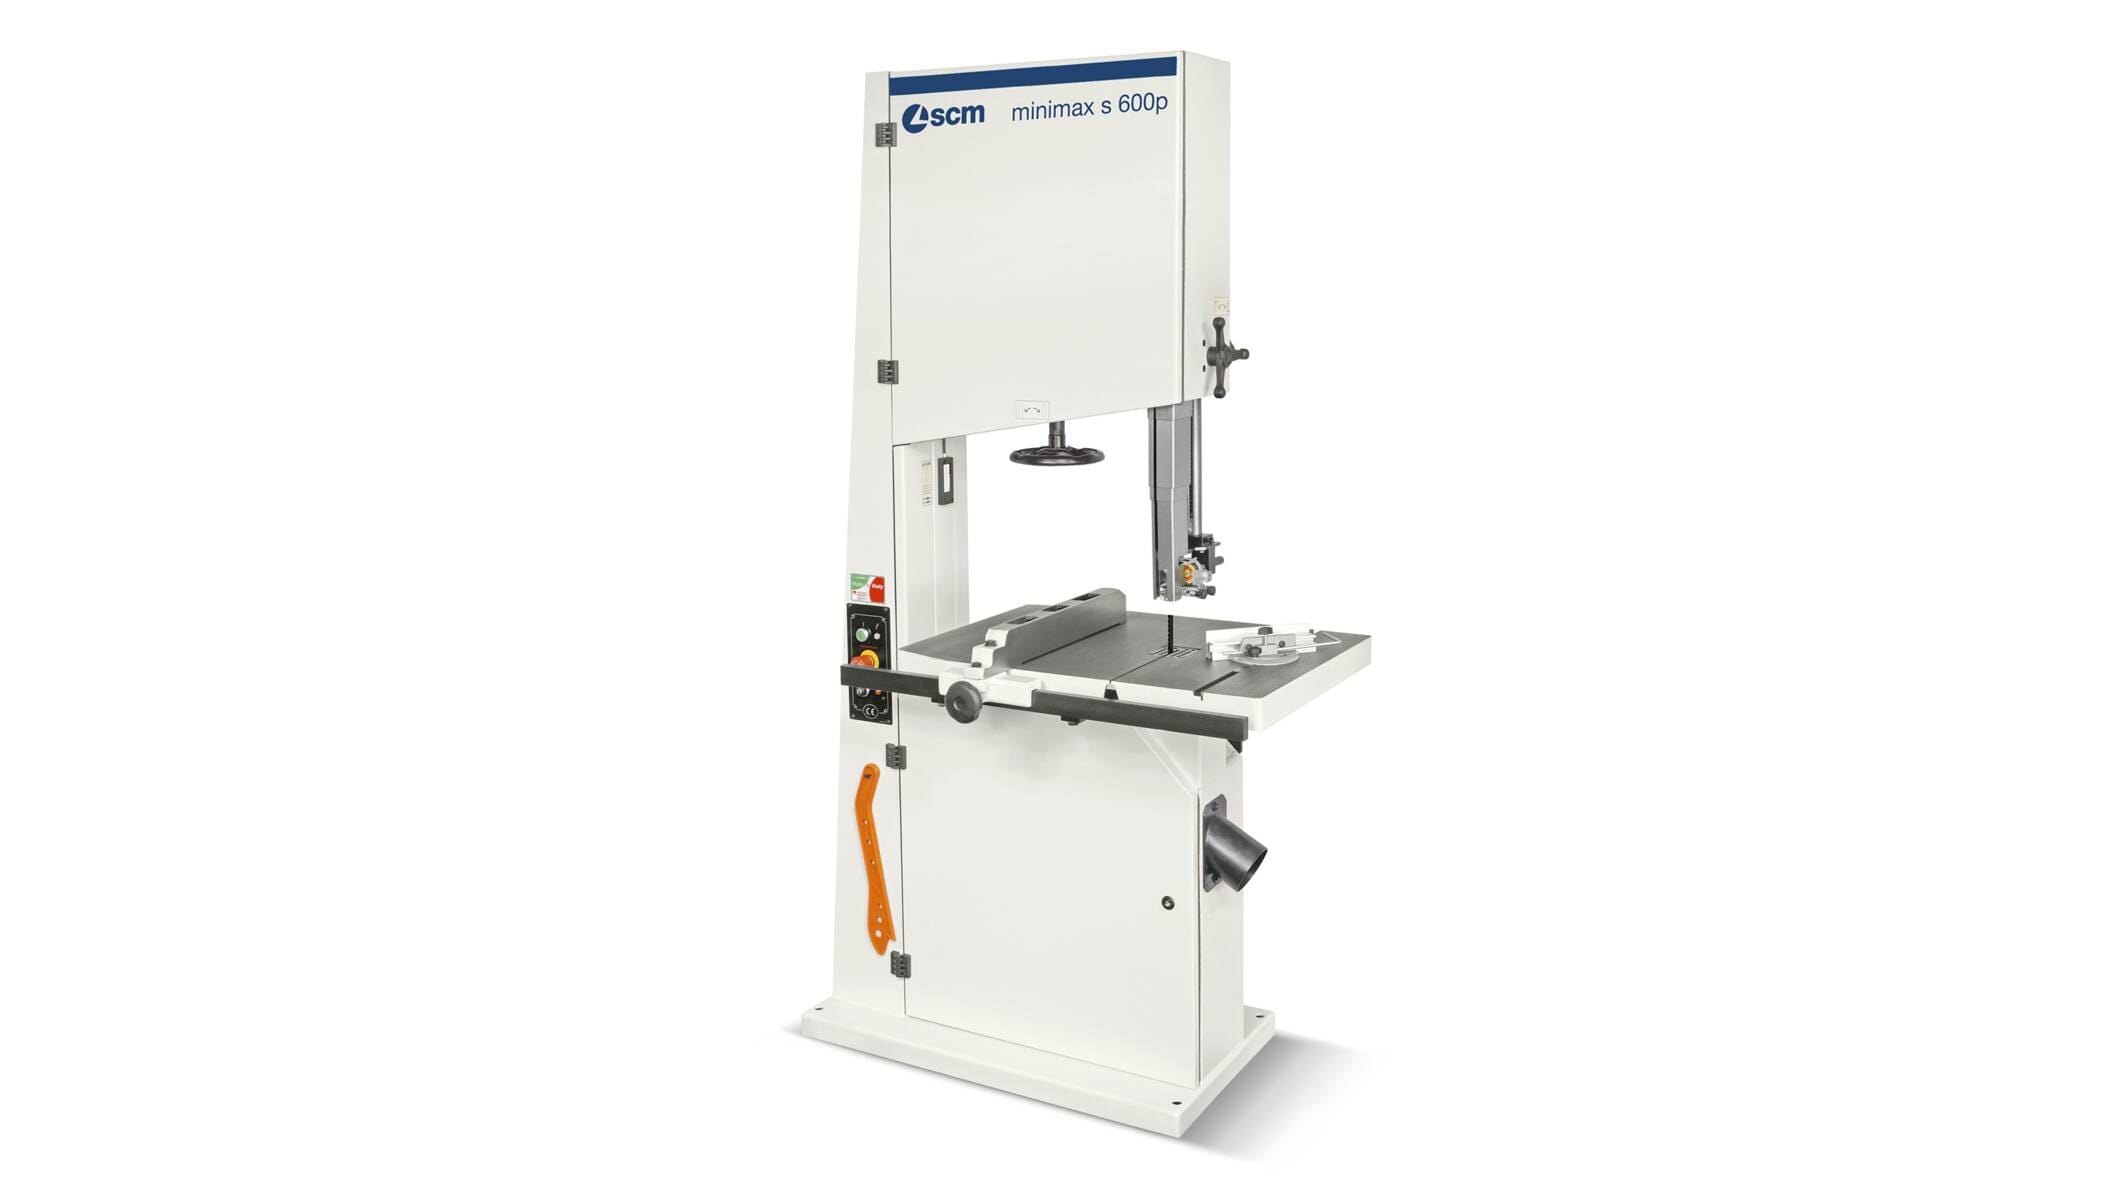 Joinery machines - Band saws - formula s 400p - s 500p - s 600p - s 700p - s 800p - s 900p